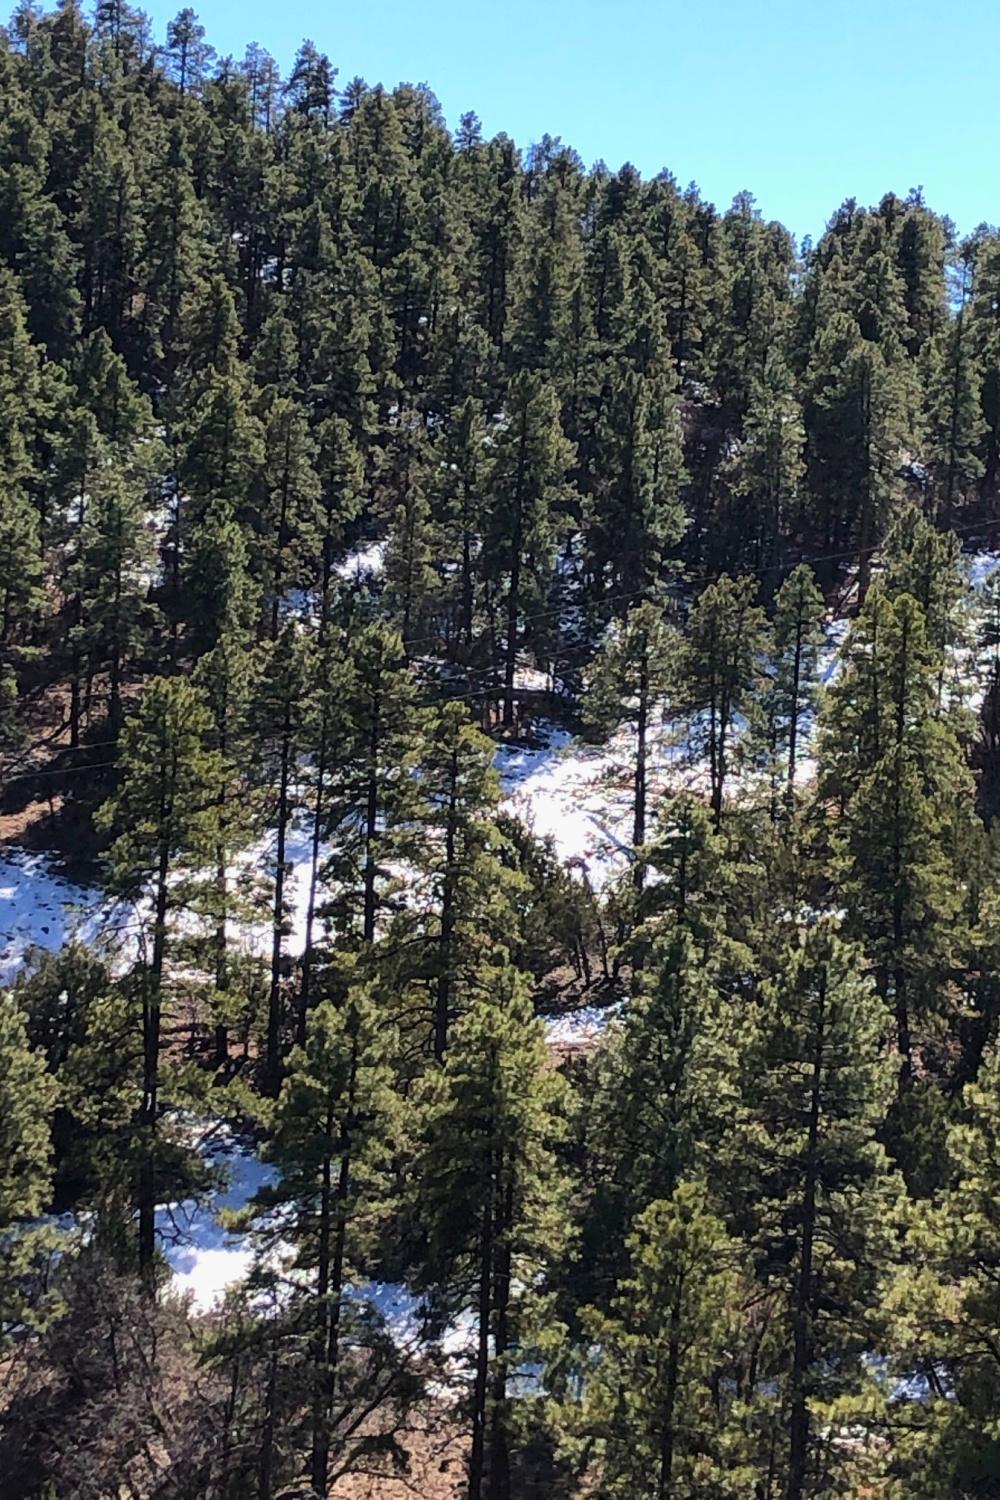 Beautiful evergreen forest with snow on the mountain along Route 179 in Arizona - Hello Lovely Studio.